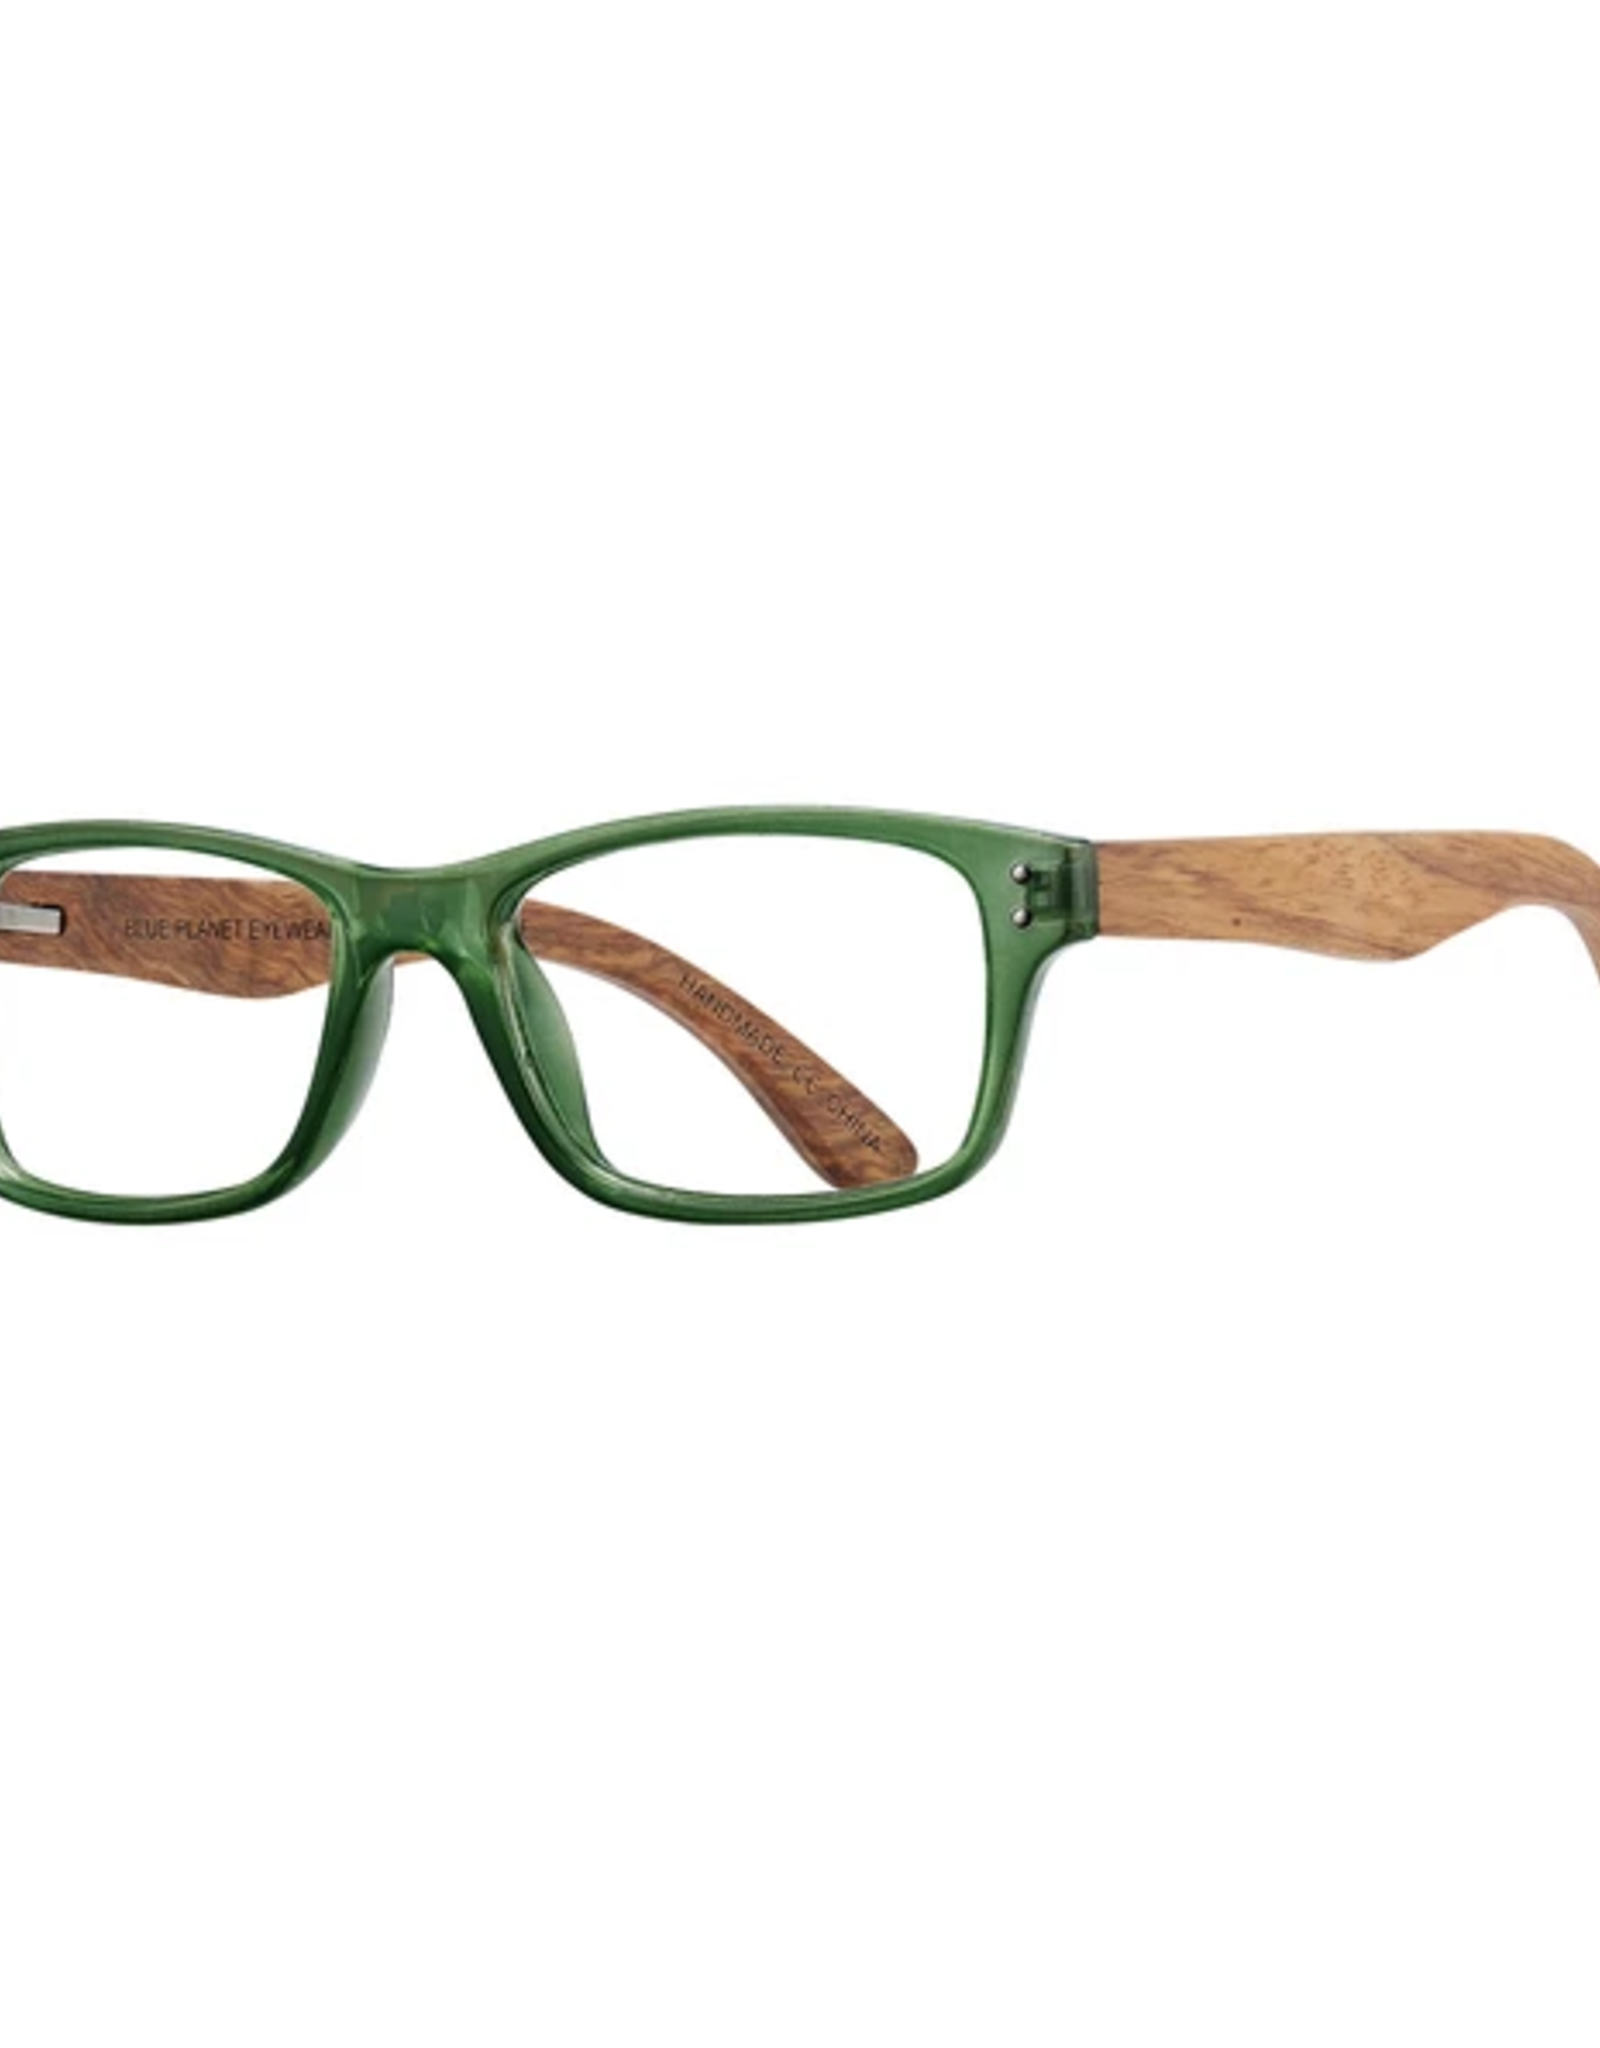 BLUE PLANET EYEWEAR GLASSES READERS OJAI GREEN